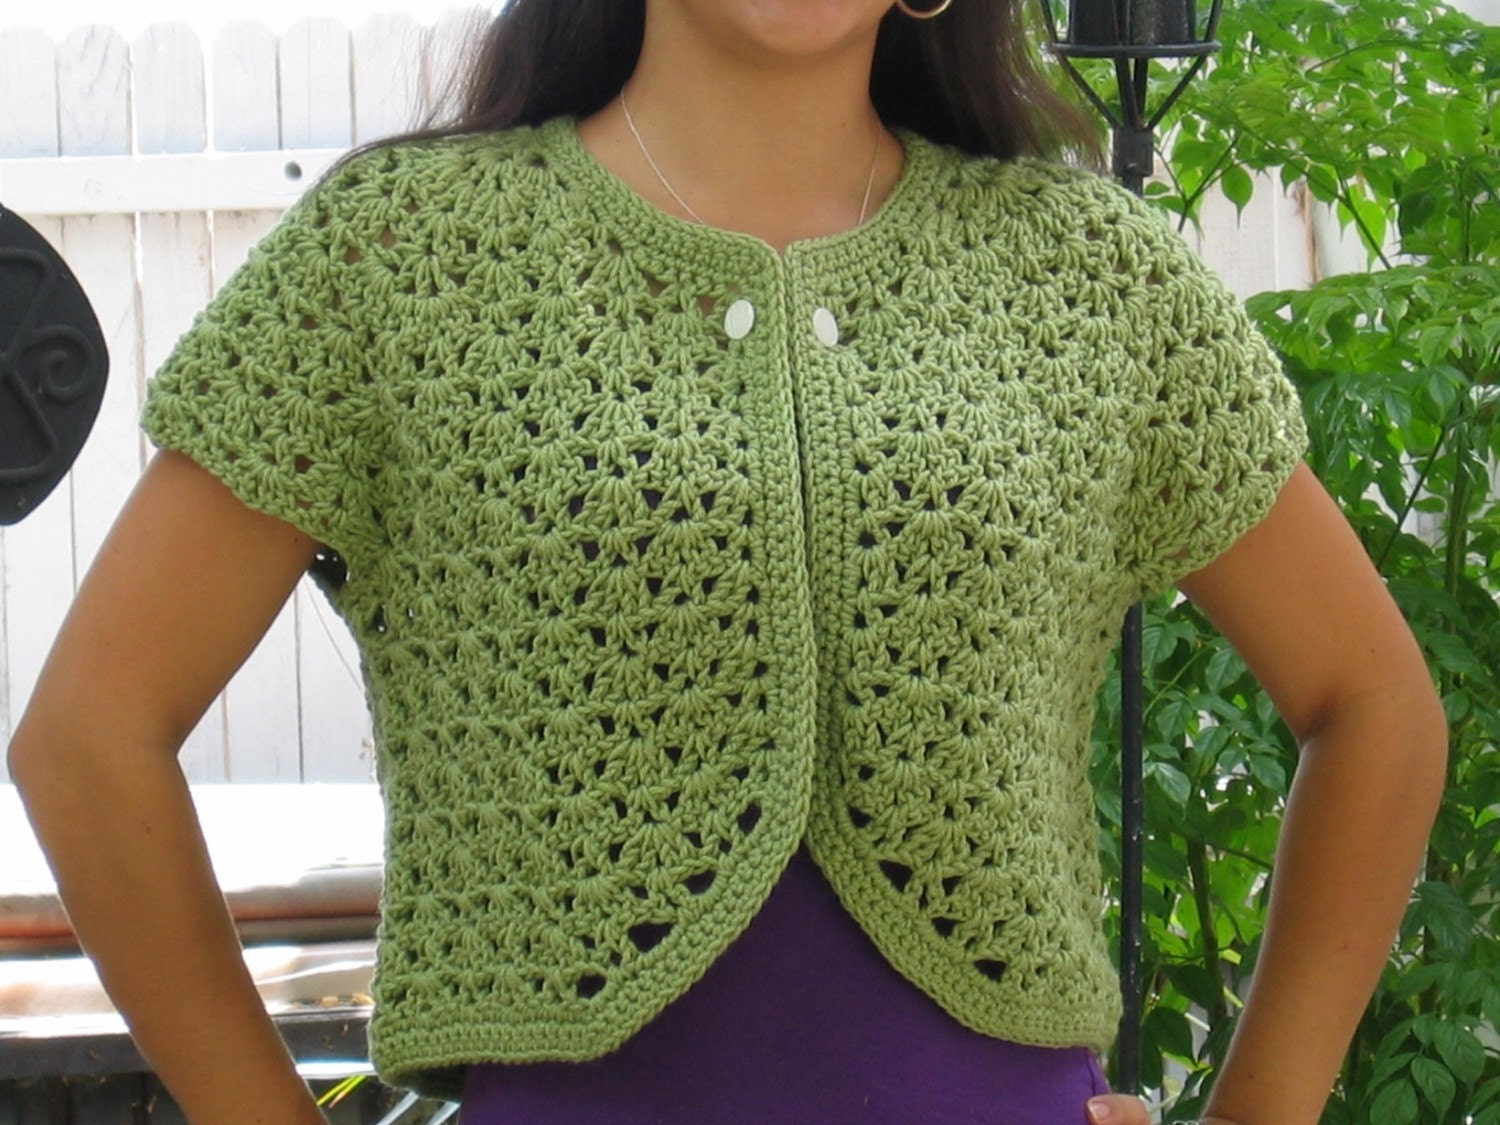 Beginner Crochet Sweater Patterns Free : CROCHET BOLERO SWEATER ? Crochet For Beginners